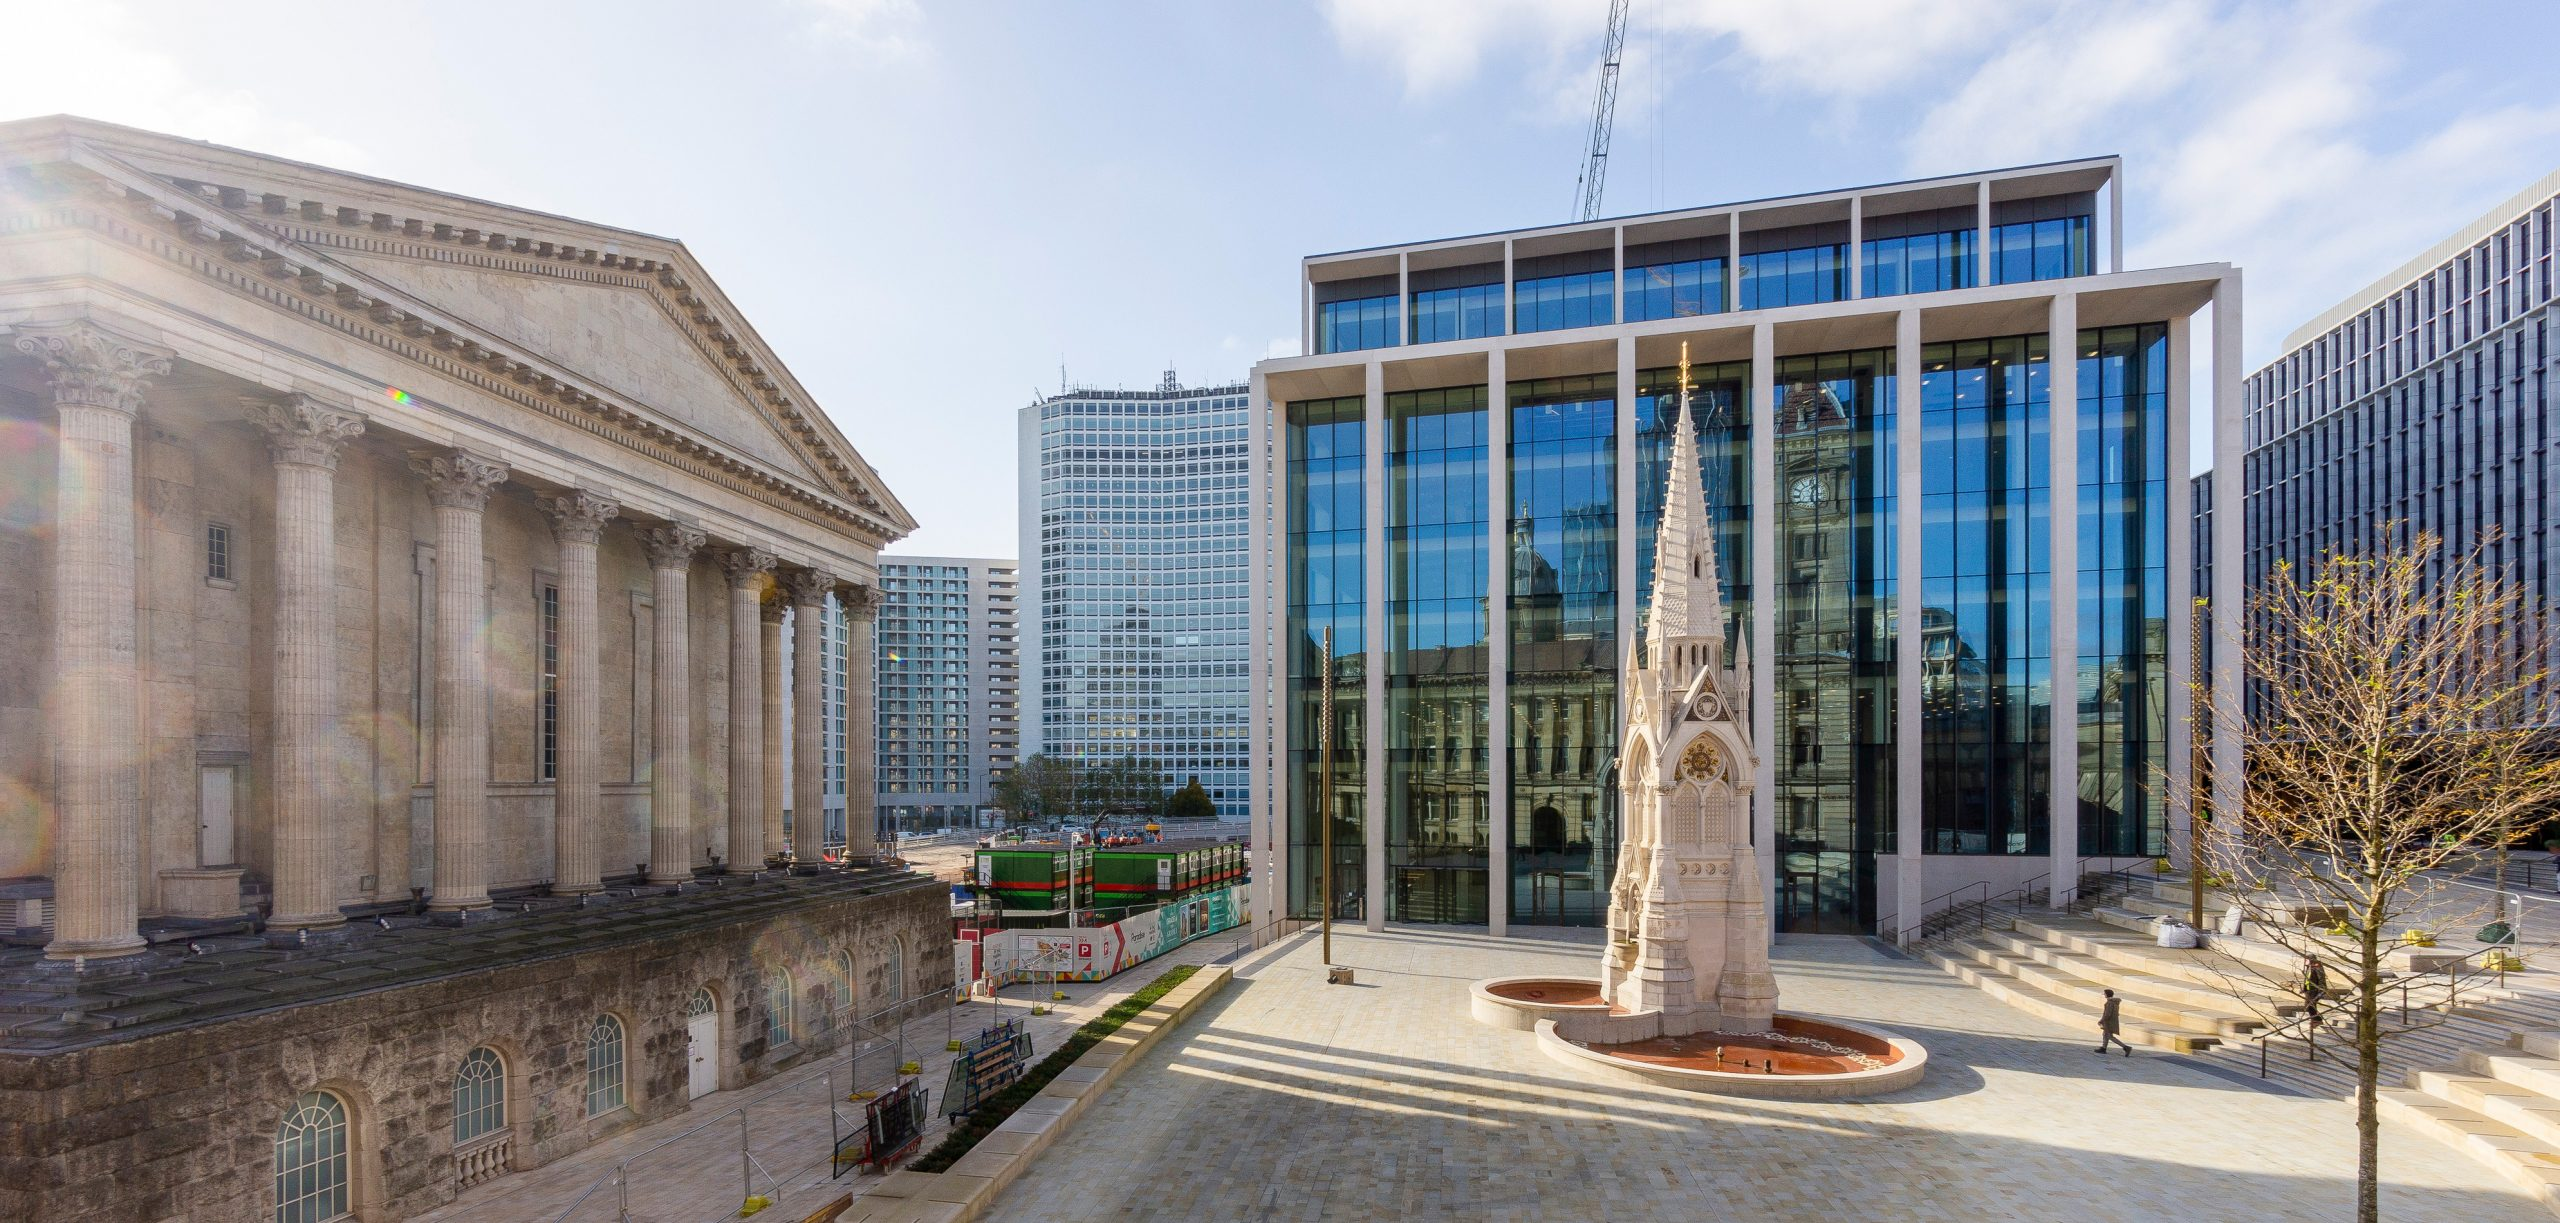 DLA Piper appoints Overbury to deliver £4.7m office fit out